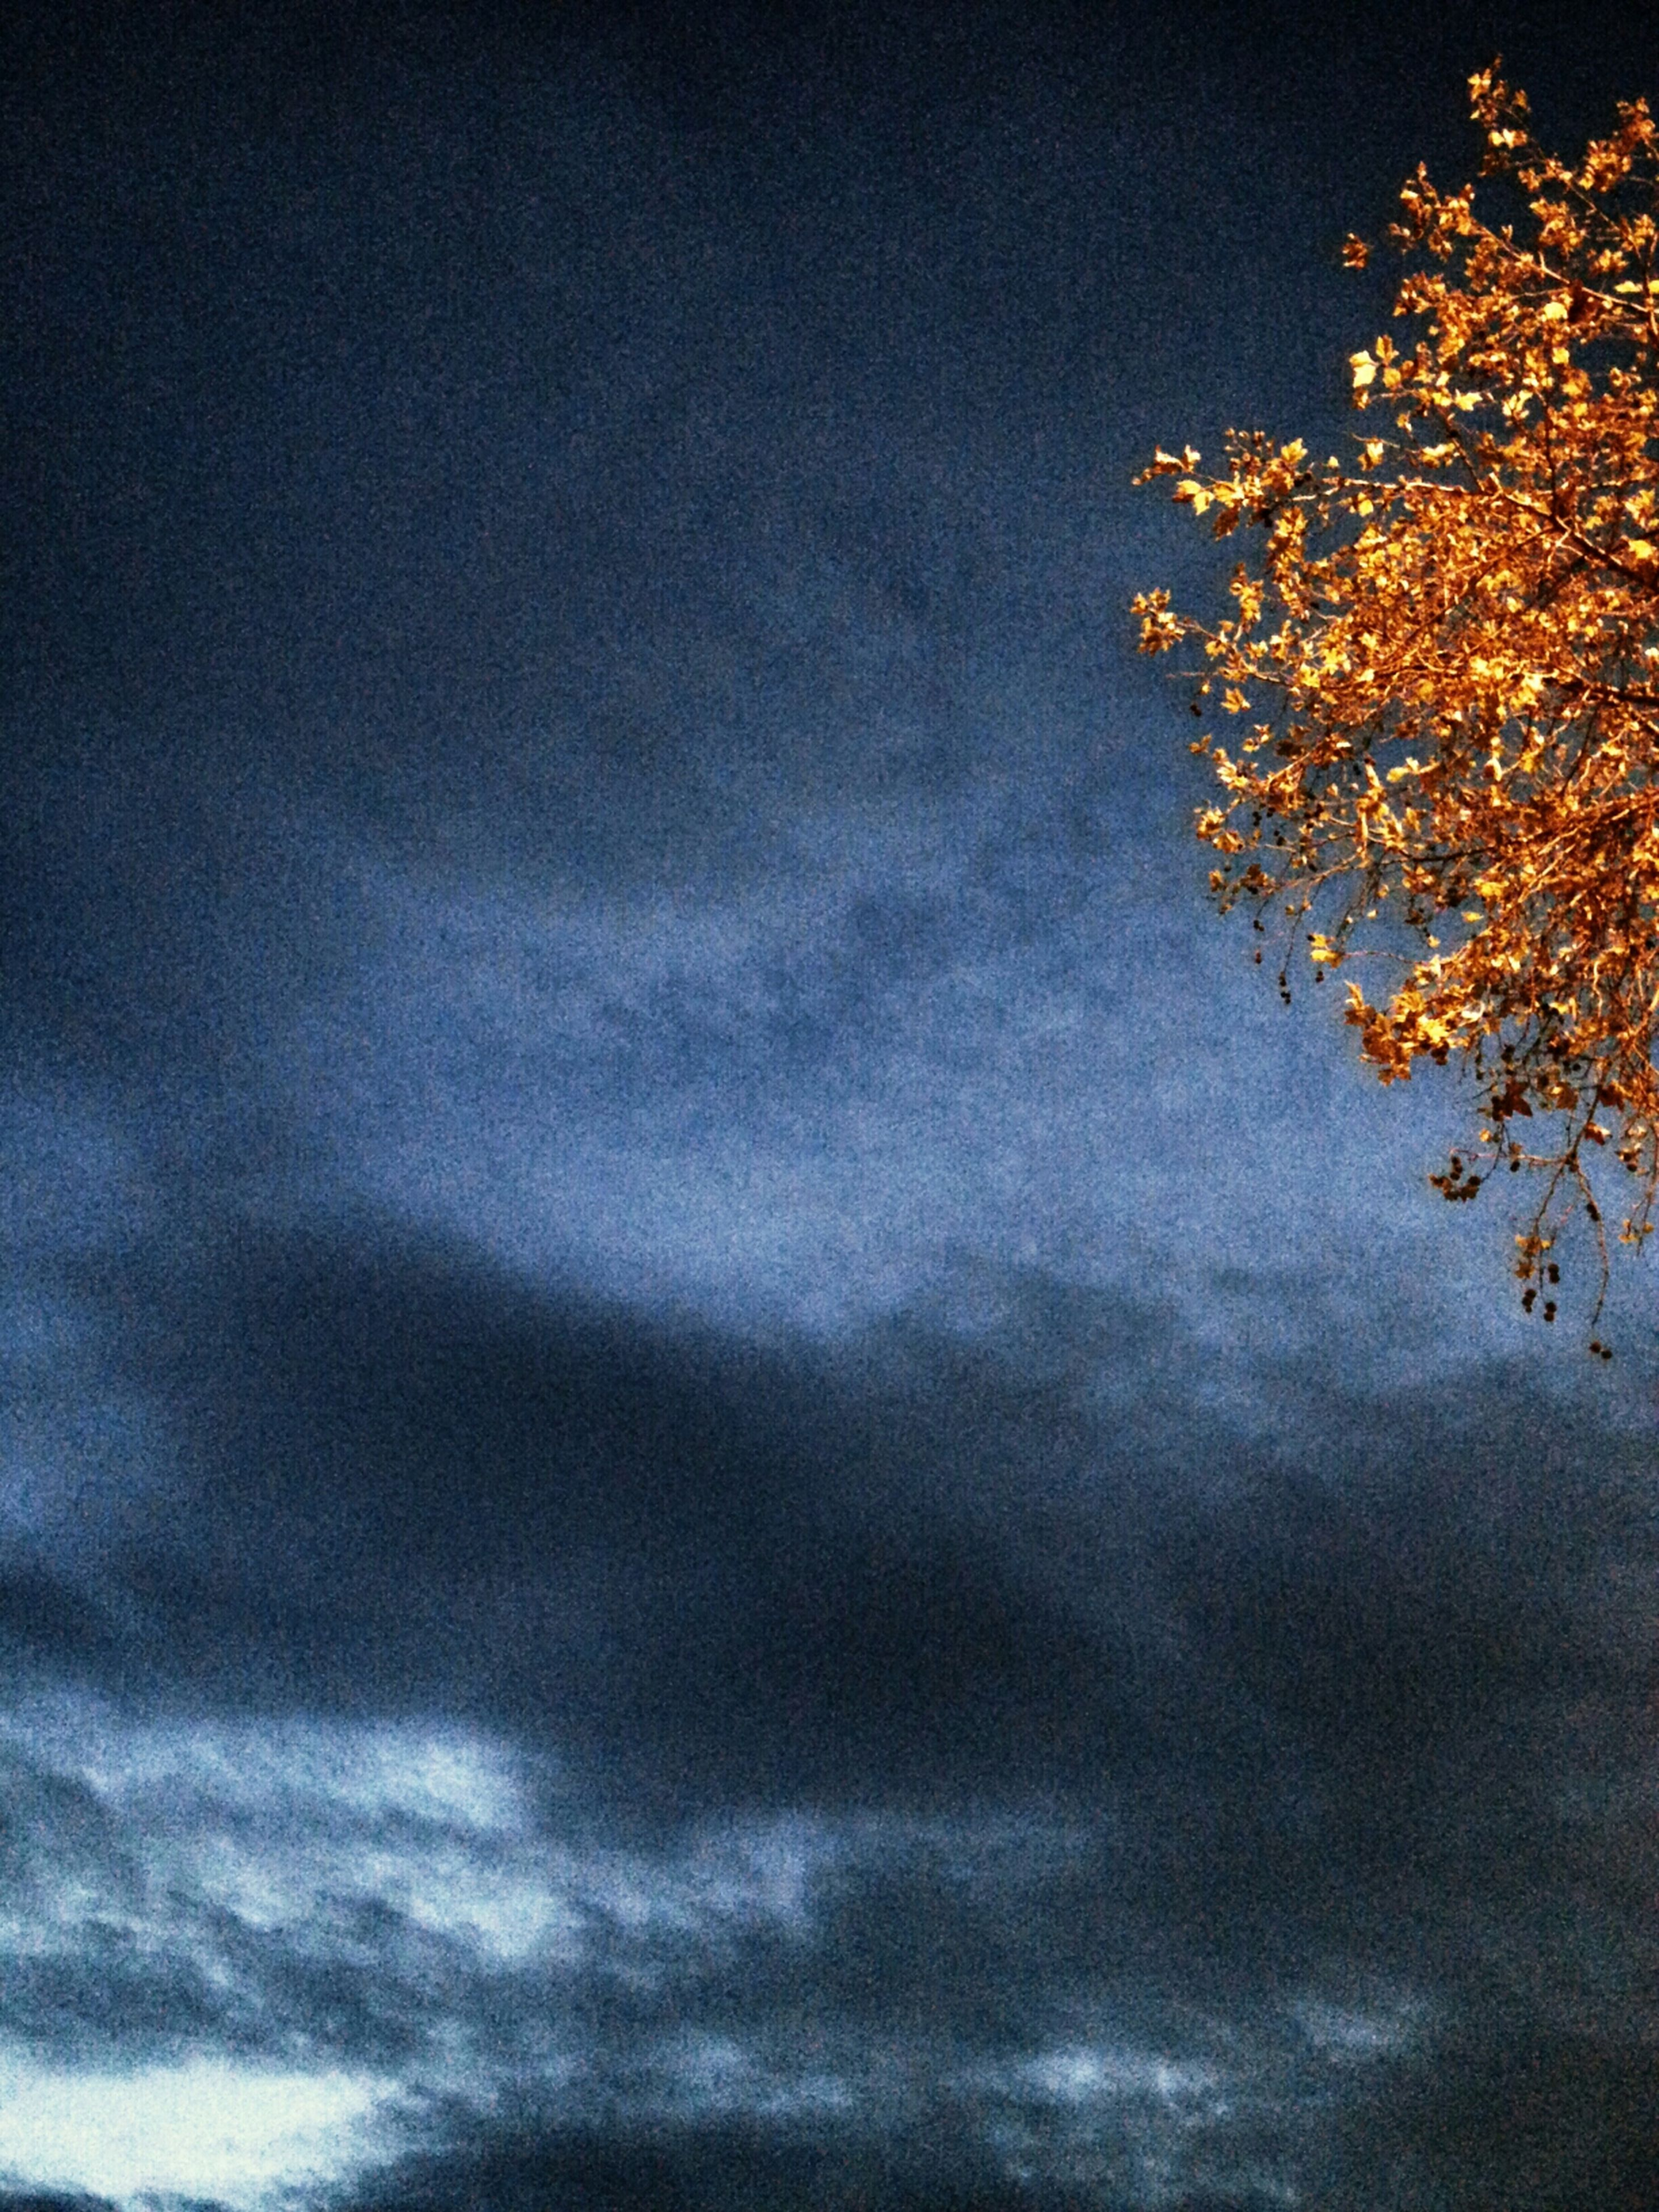 sky, low angle view, cloud - sky, beauty in nature, tranquility, scenics, nature, cloudy, tranquil scene, tree, cloud, weather, idyllic, overcast, outdoors, no people, blue, dusk, cloudscape, growth